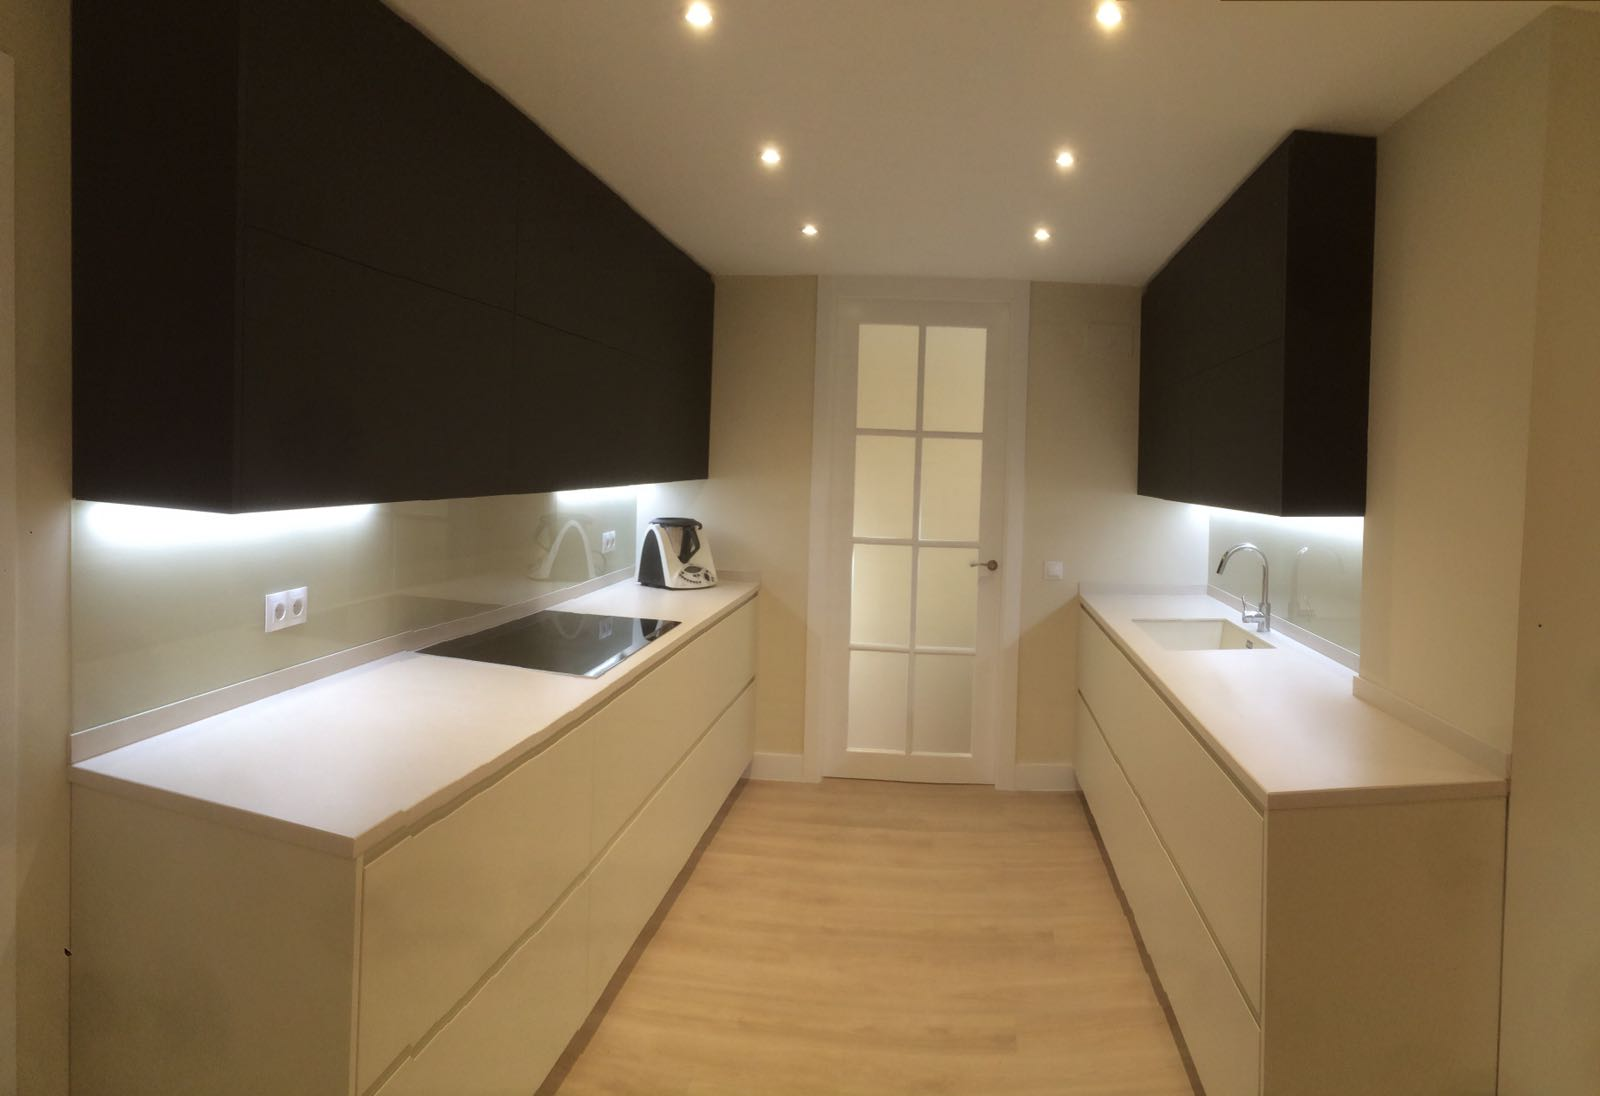 Proyecto cocina madrid capital inalsan for Muebles en madrid capital